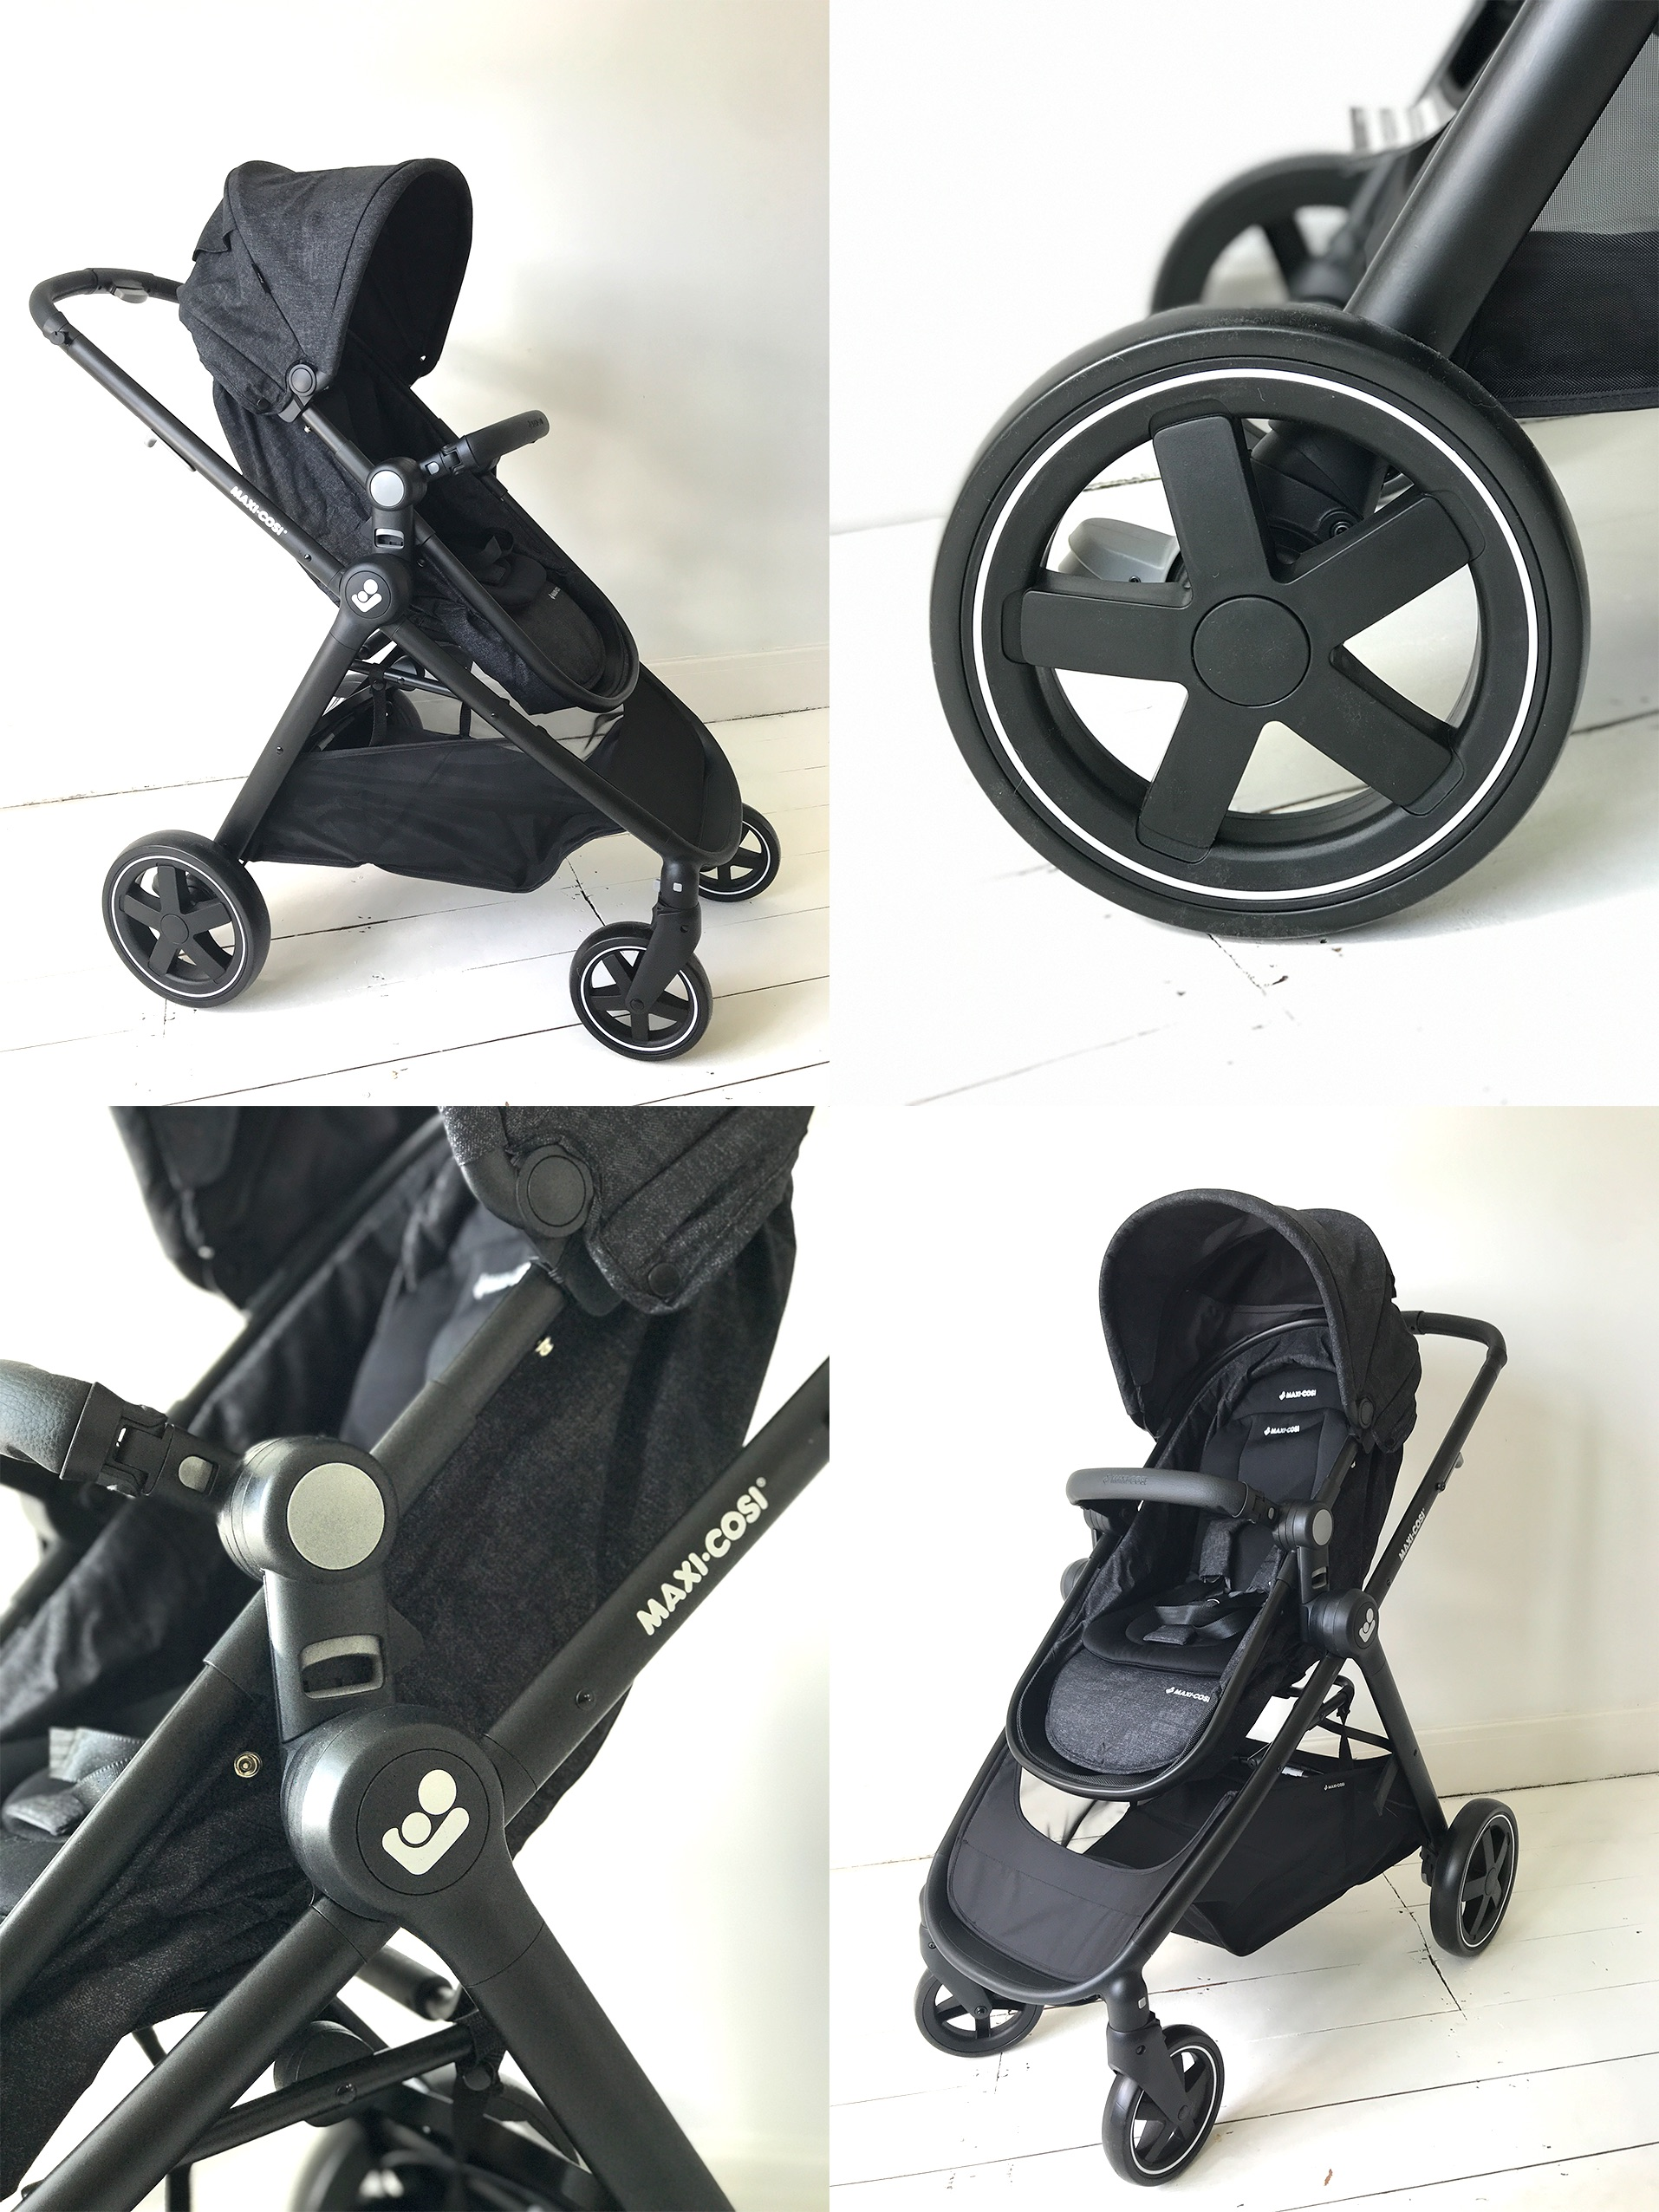 Dadsnet reviews 6 of the UK's best pushchairs in 2018, Maxi Cosi%, product-review%